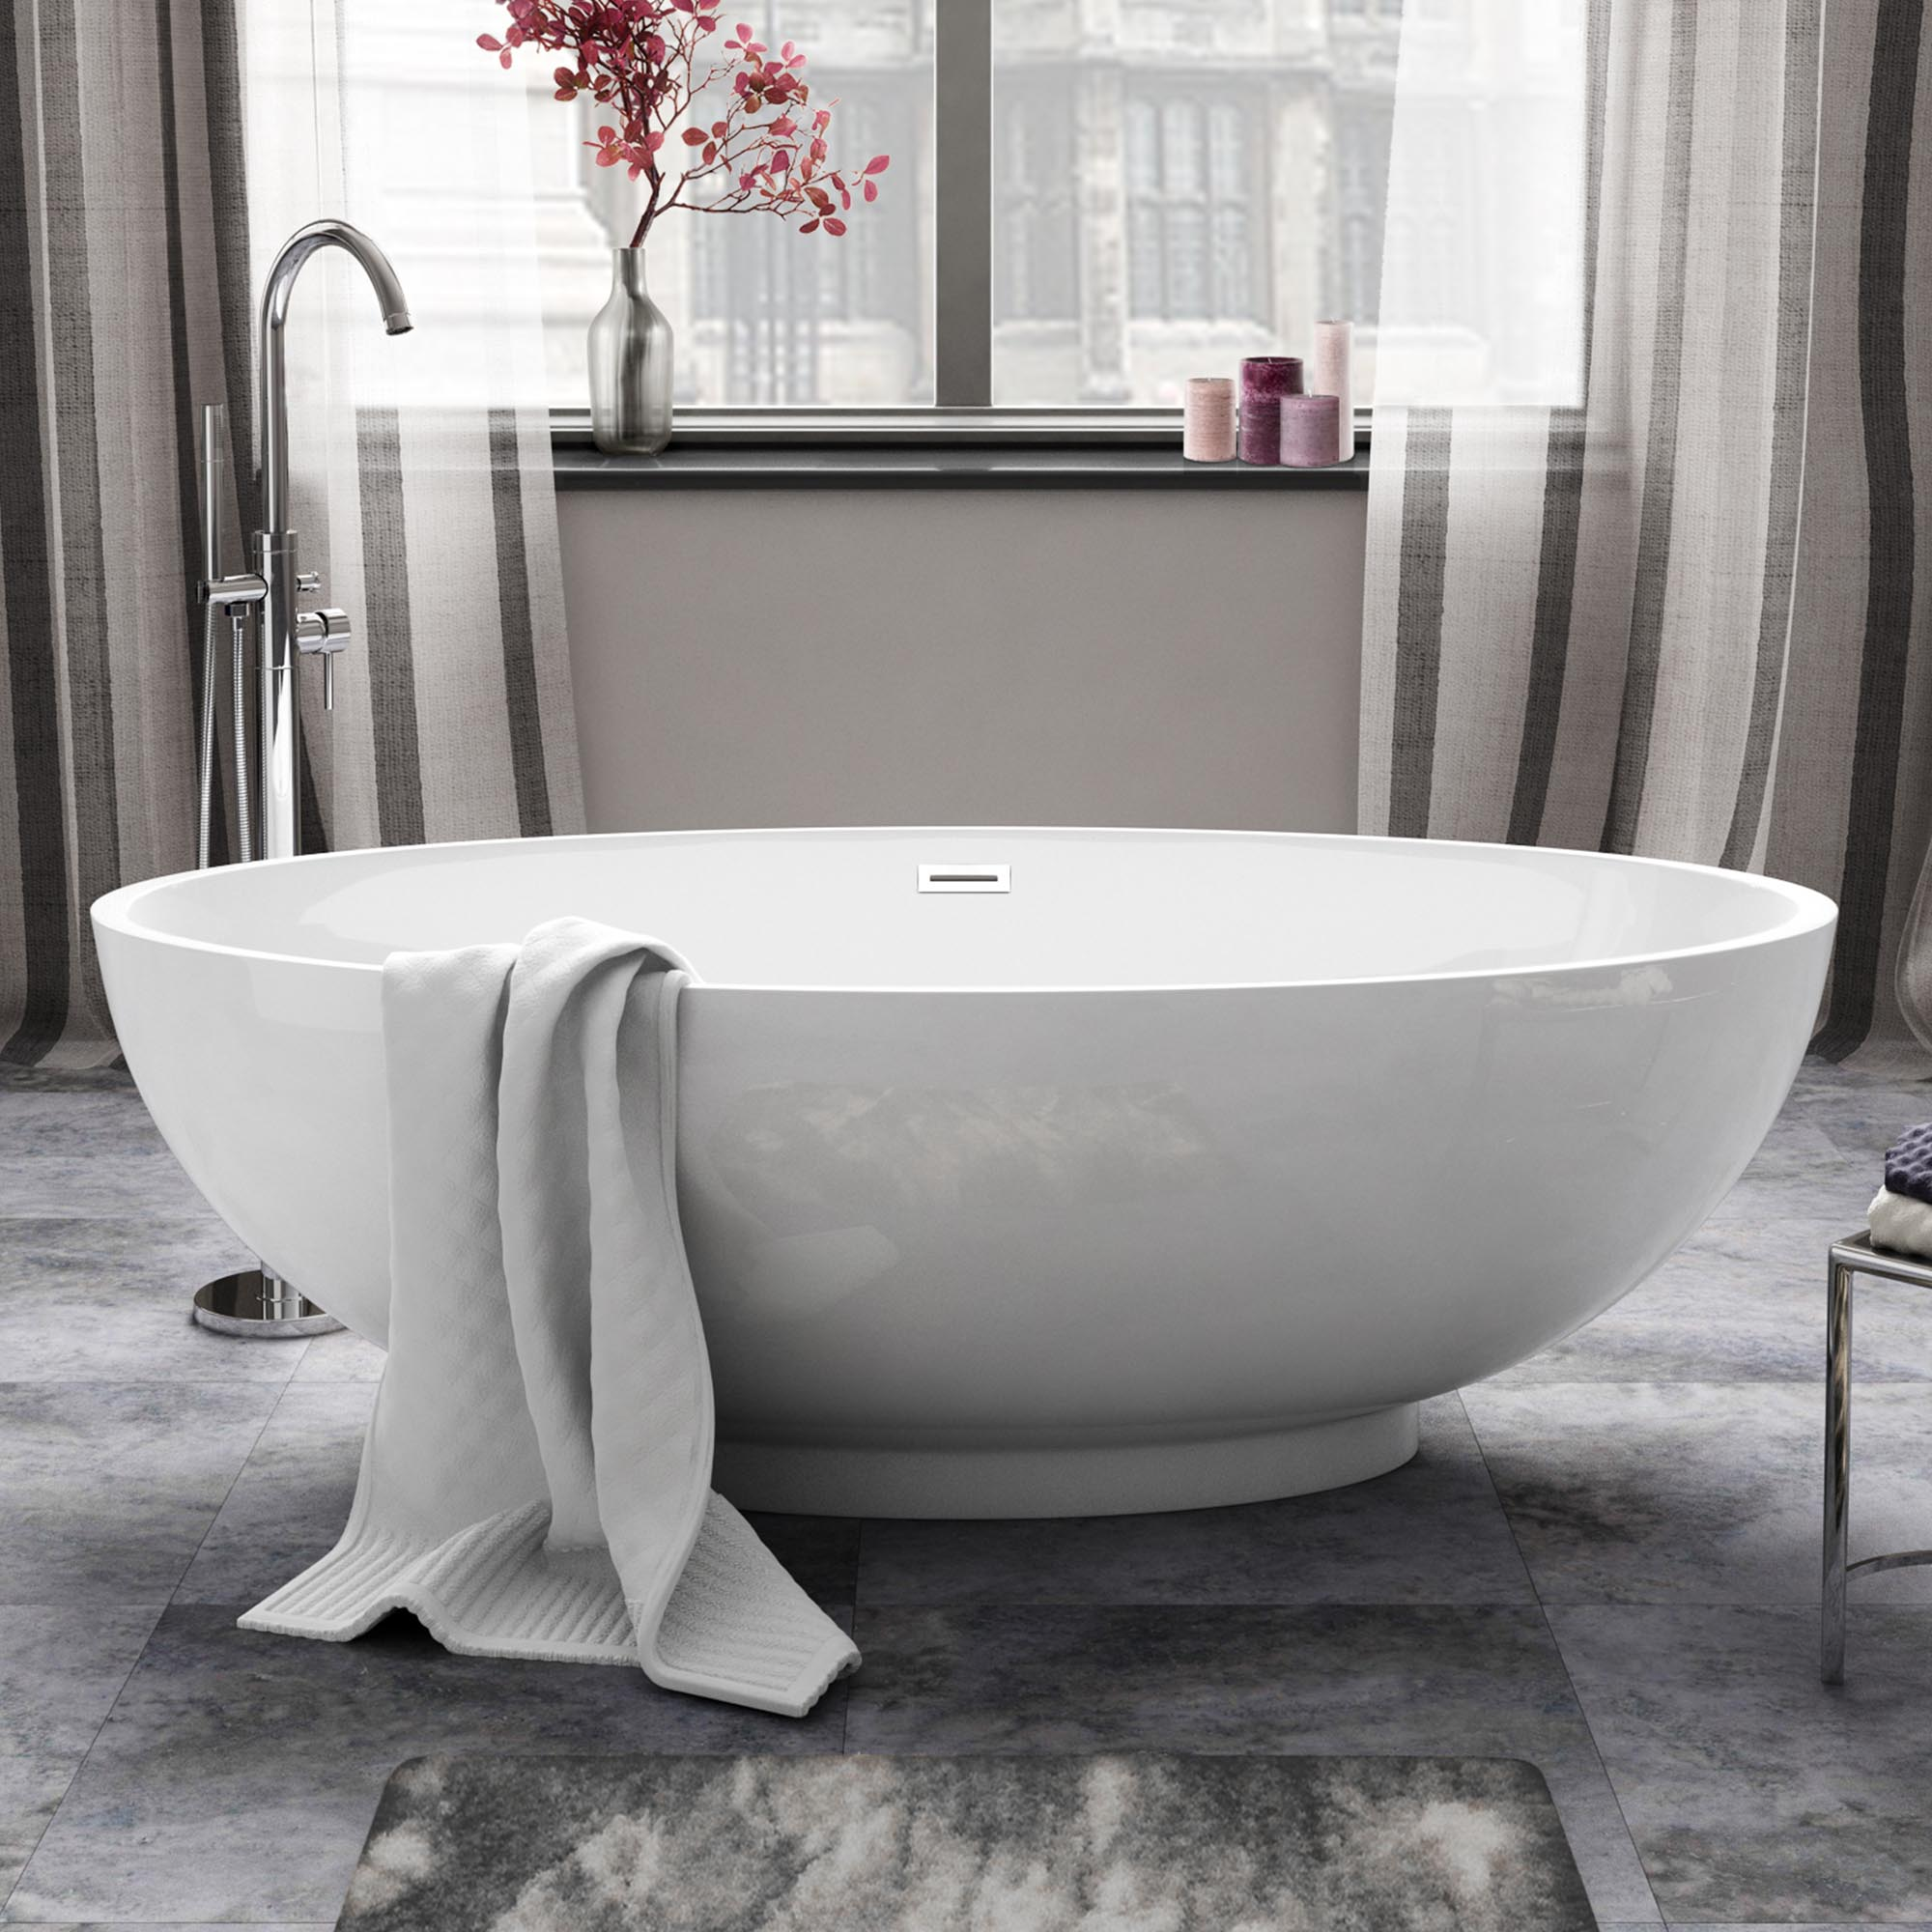 Designer bathroom freestanding modern roll top baths ebay for Designer bath